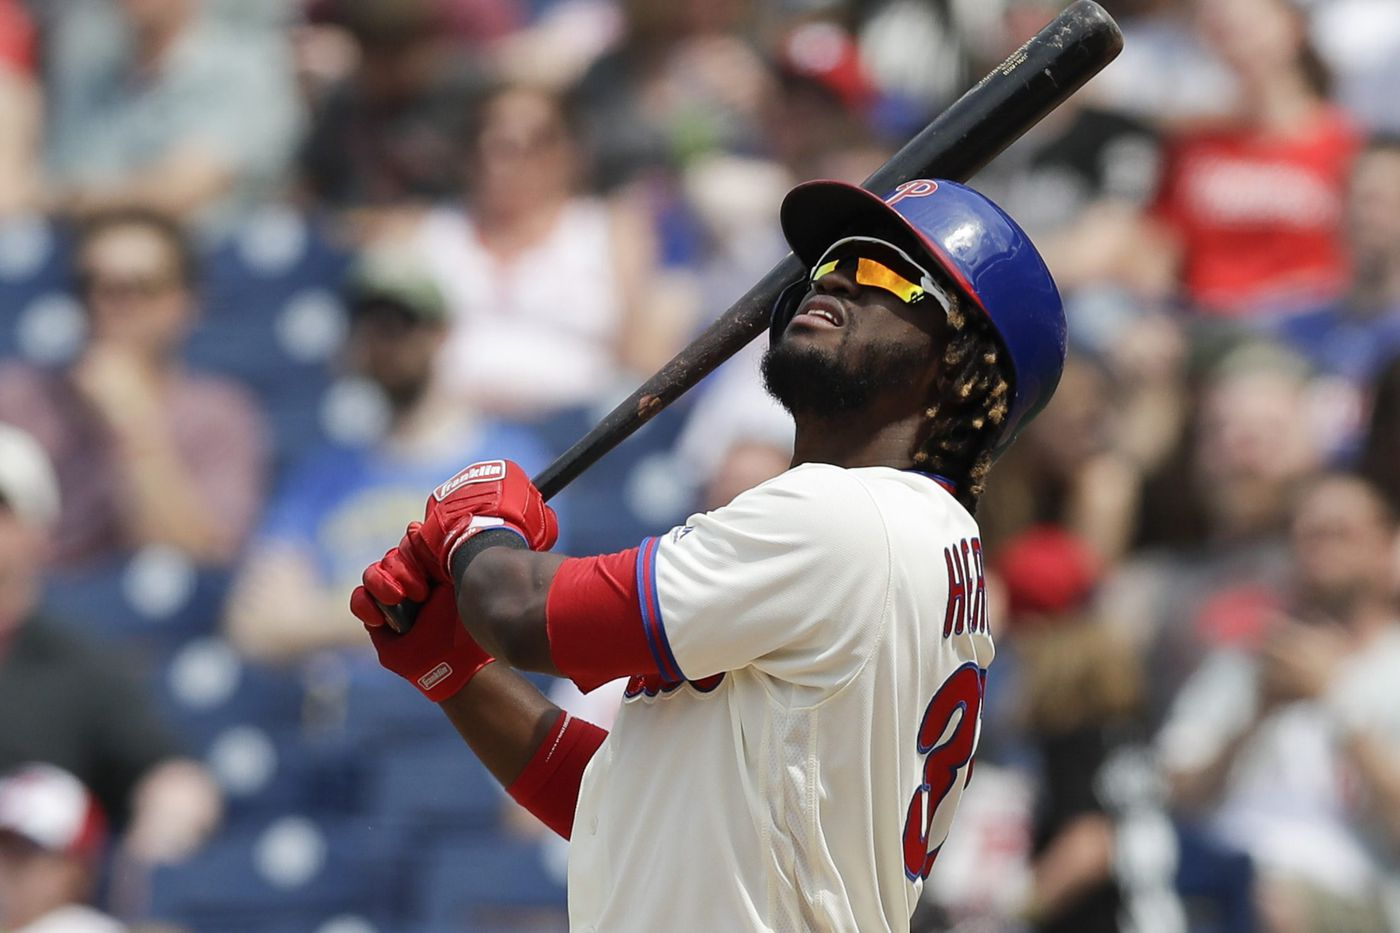 A frustrated Odubel Herrera isn't sure what's wrong